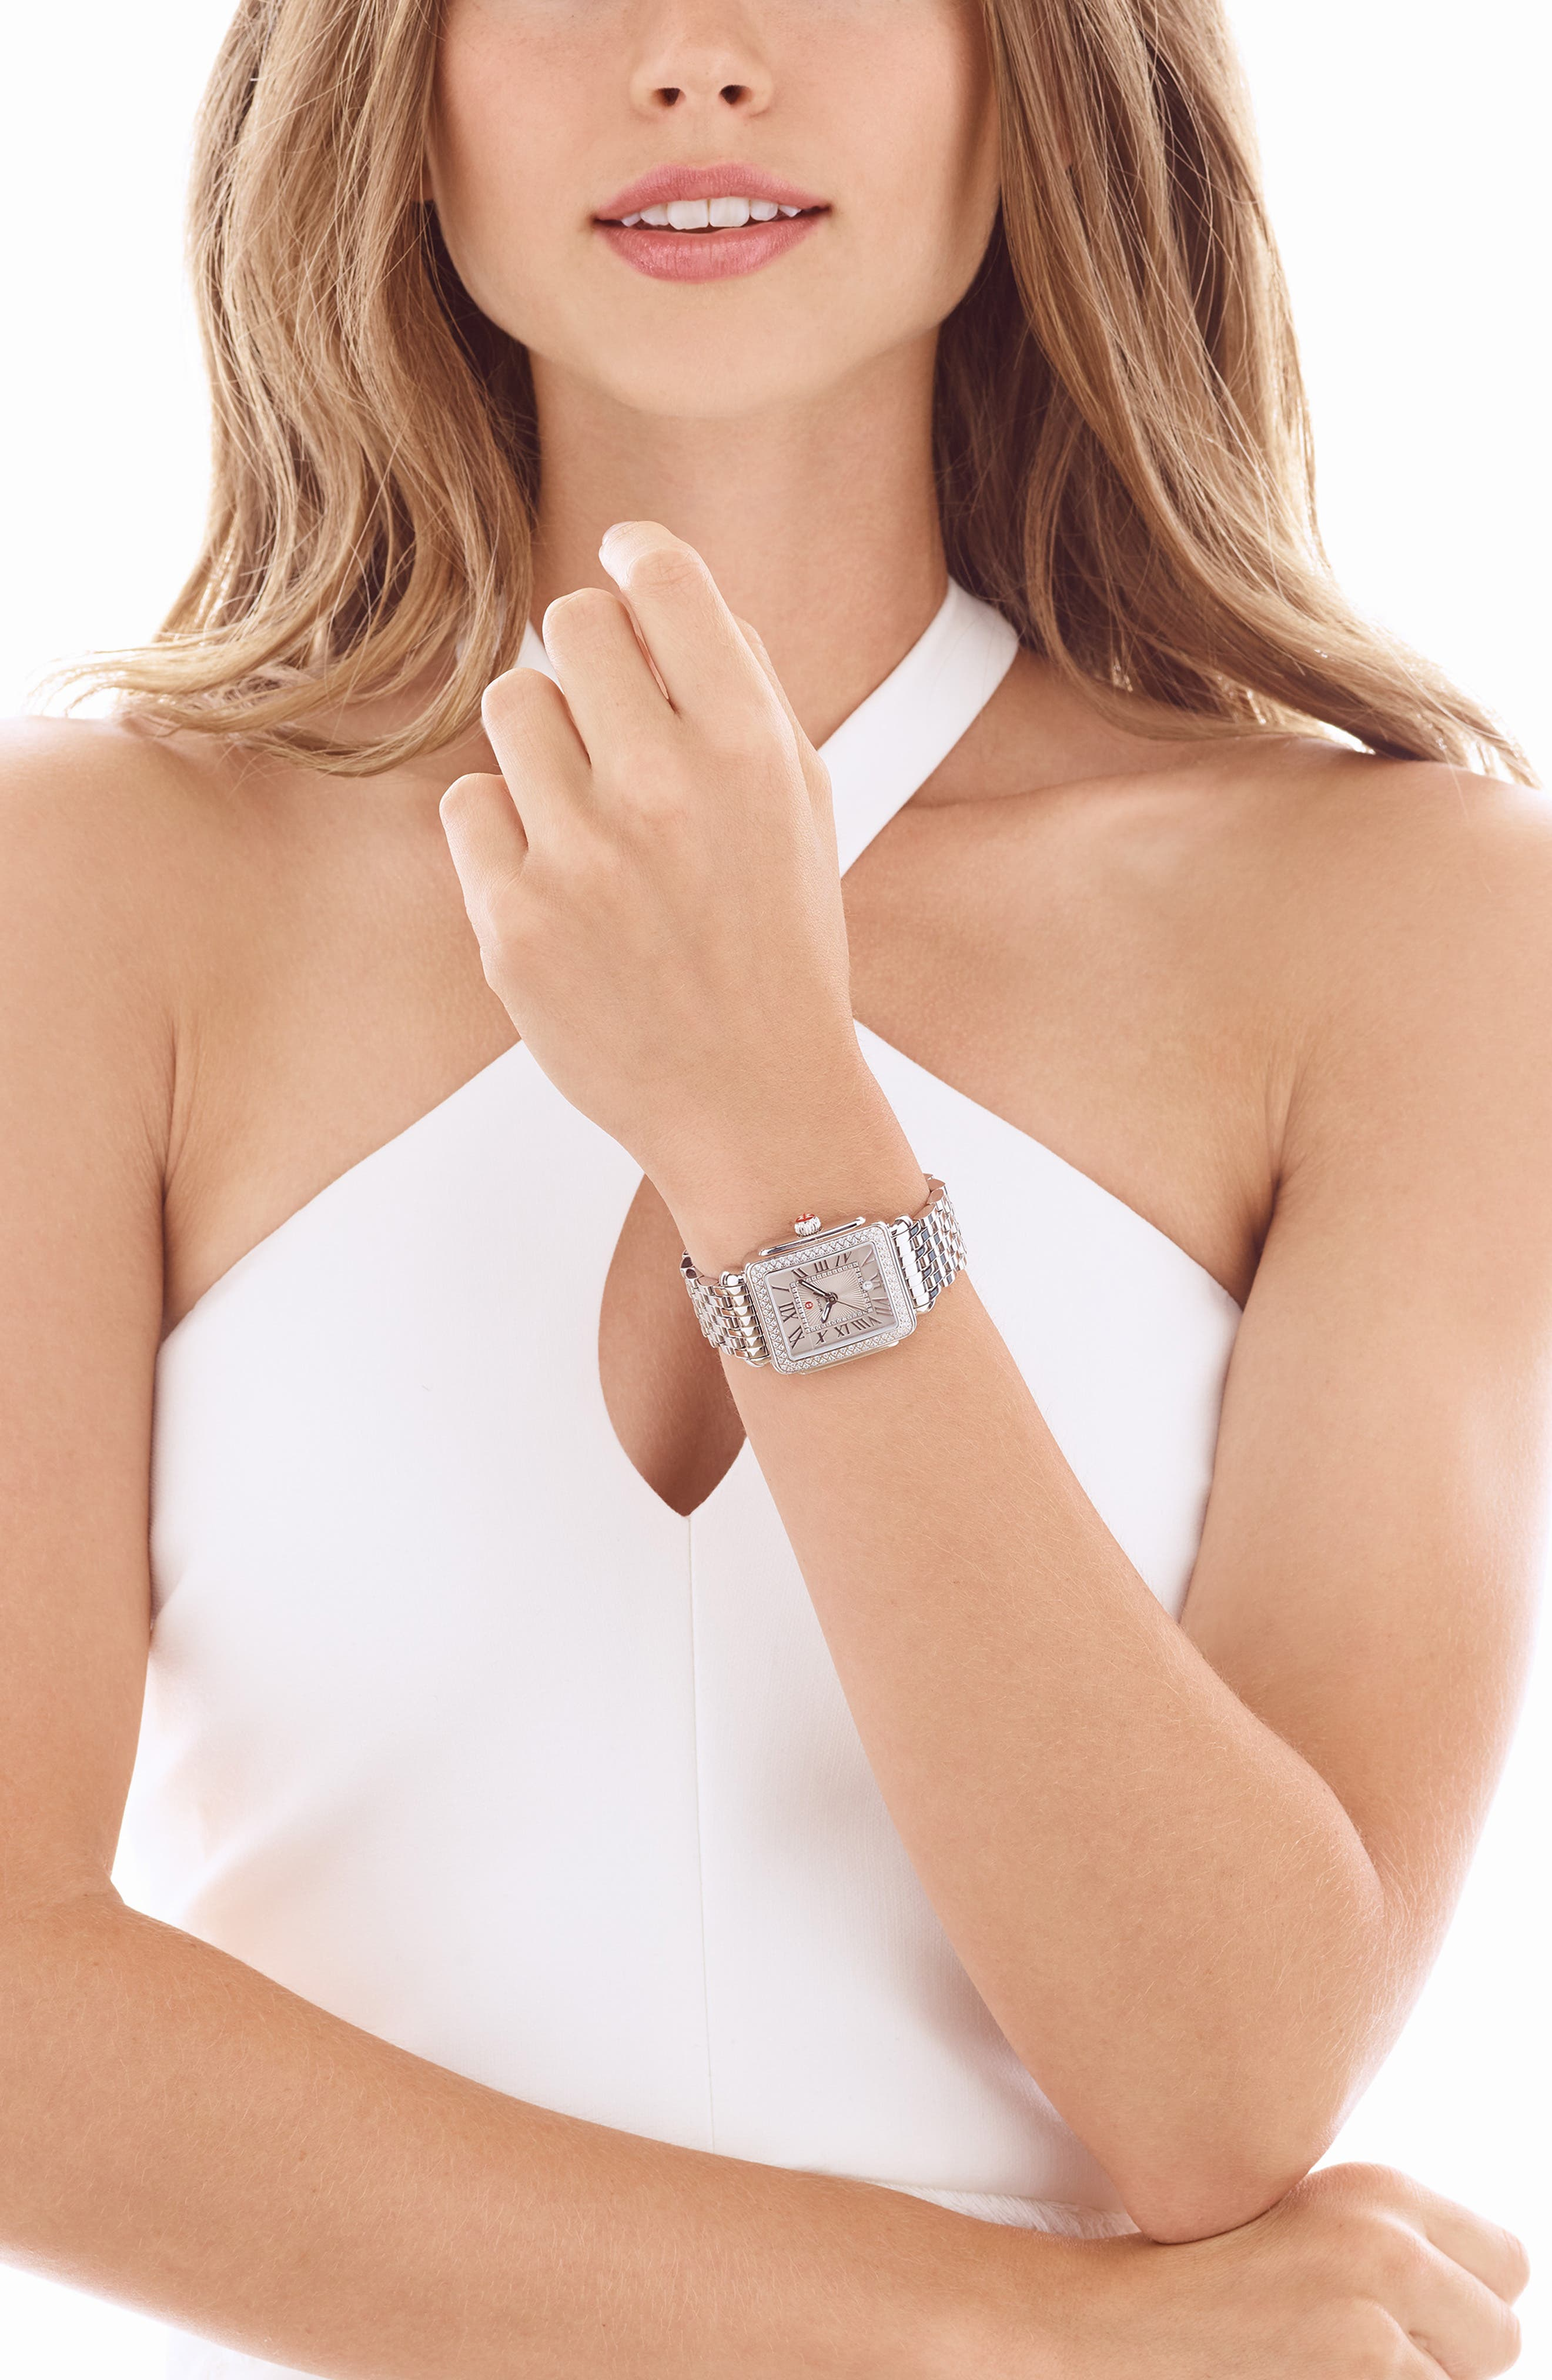 MICHELE, Deco Madison Mid Diamond Dial Watch Head, 29mm x 31mm, Alternate thumbnail 2, color, SILVER/ CASHMERE